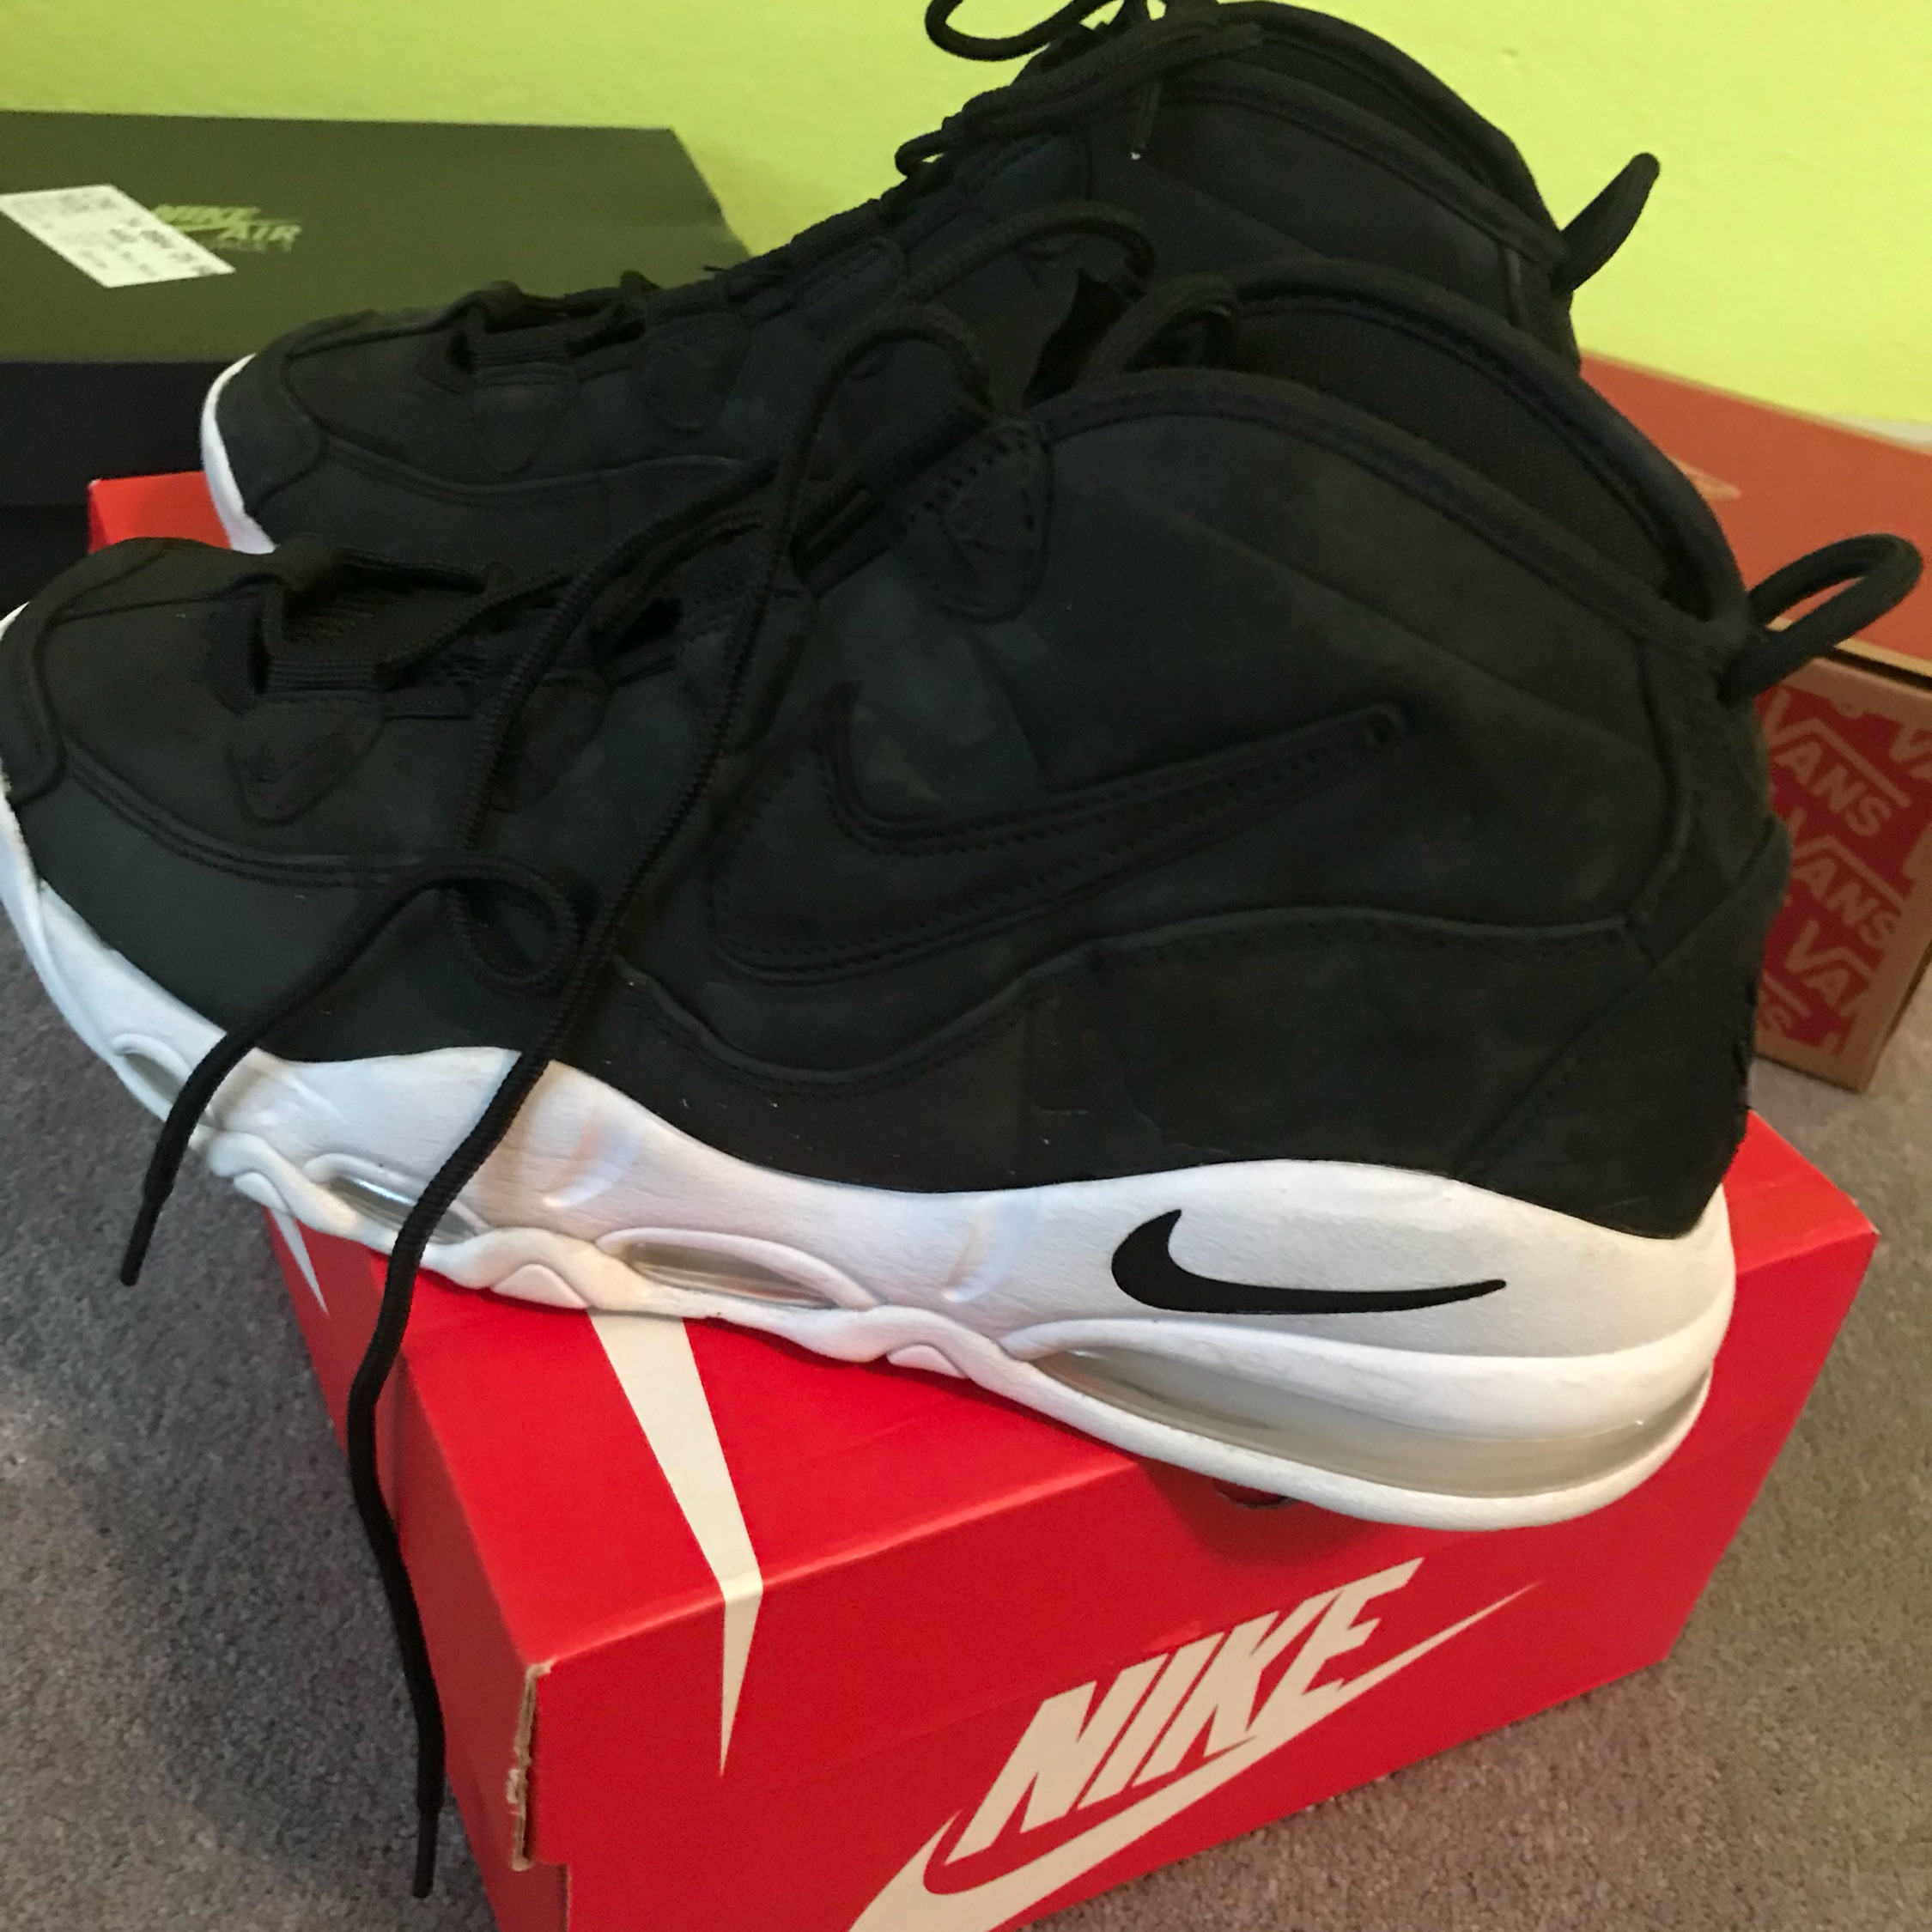 separation shoes e4a0b 69c88 Nike Air Max Uptempo 95 Black Pack